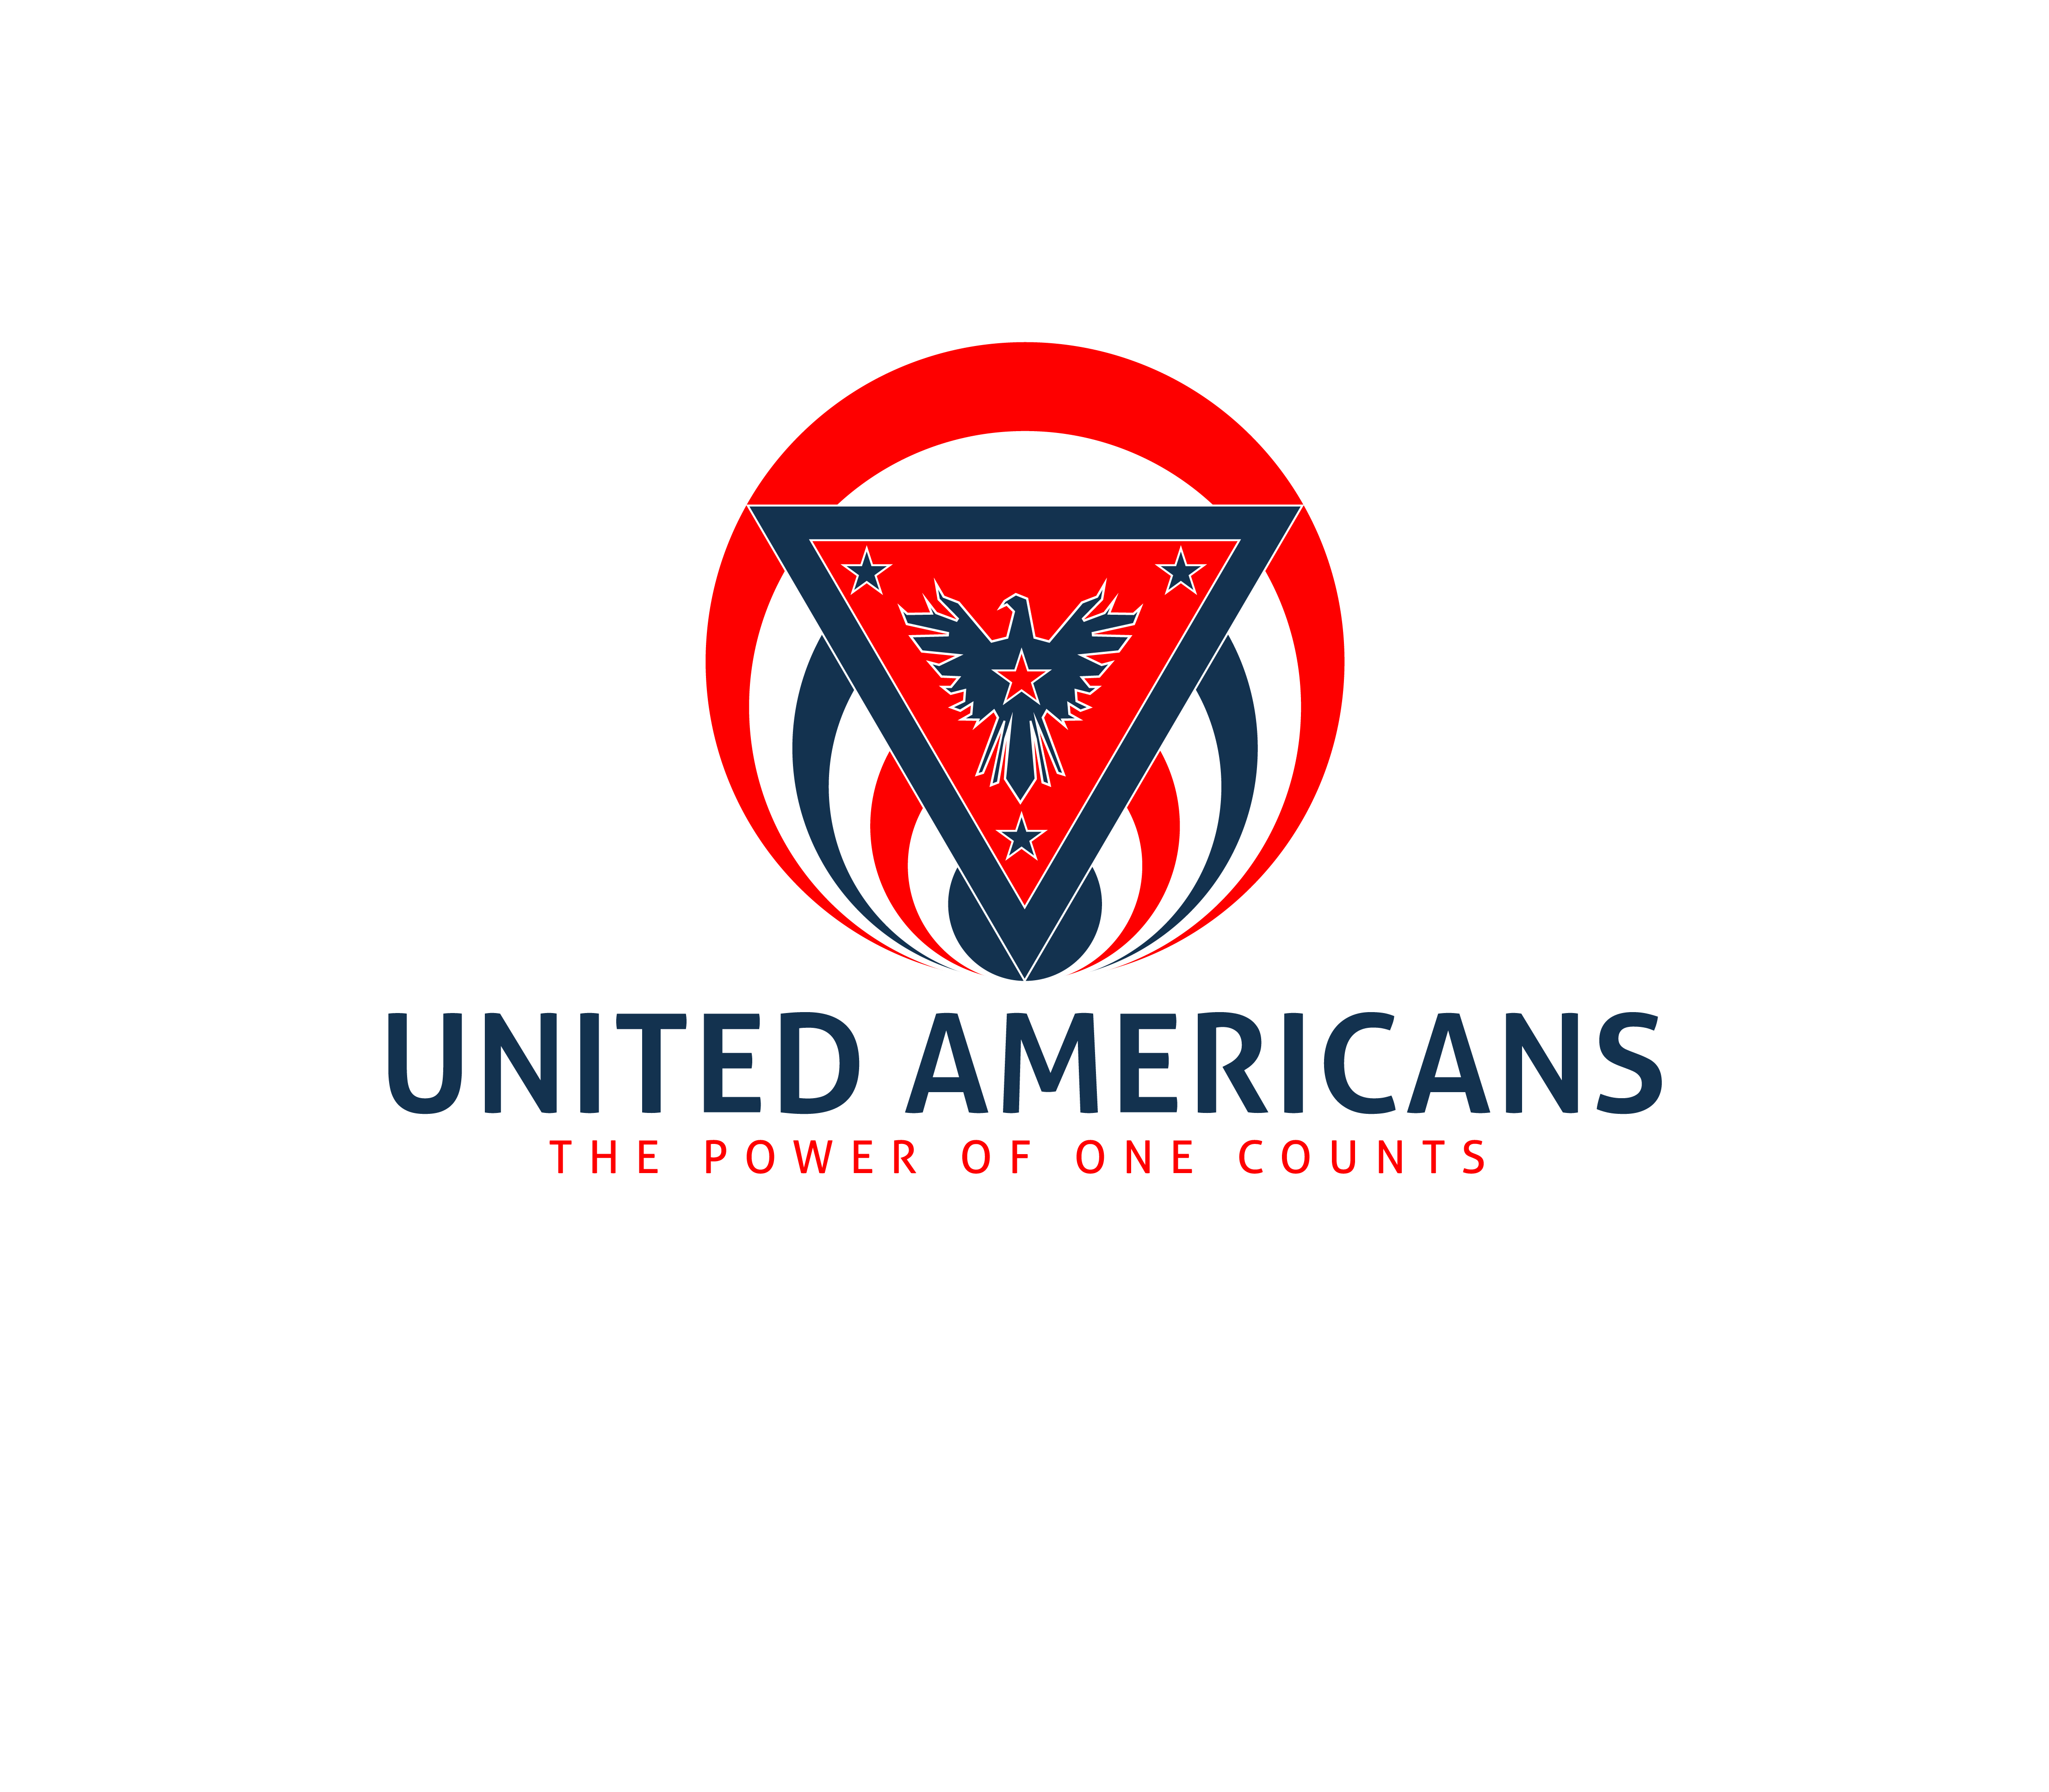 Logo Design by 3draw - Entry No. 114 in the Logo Design Contest Creative Logo Design for United Americans.